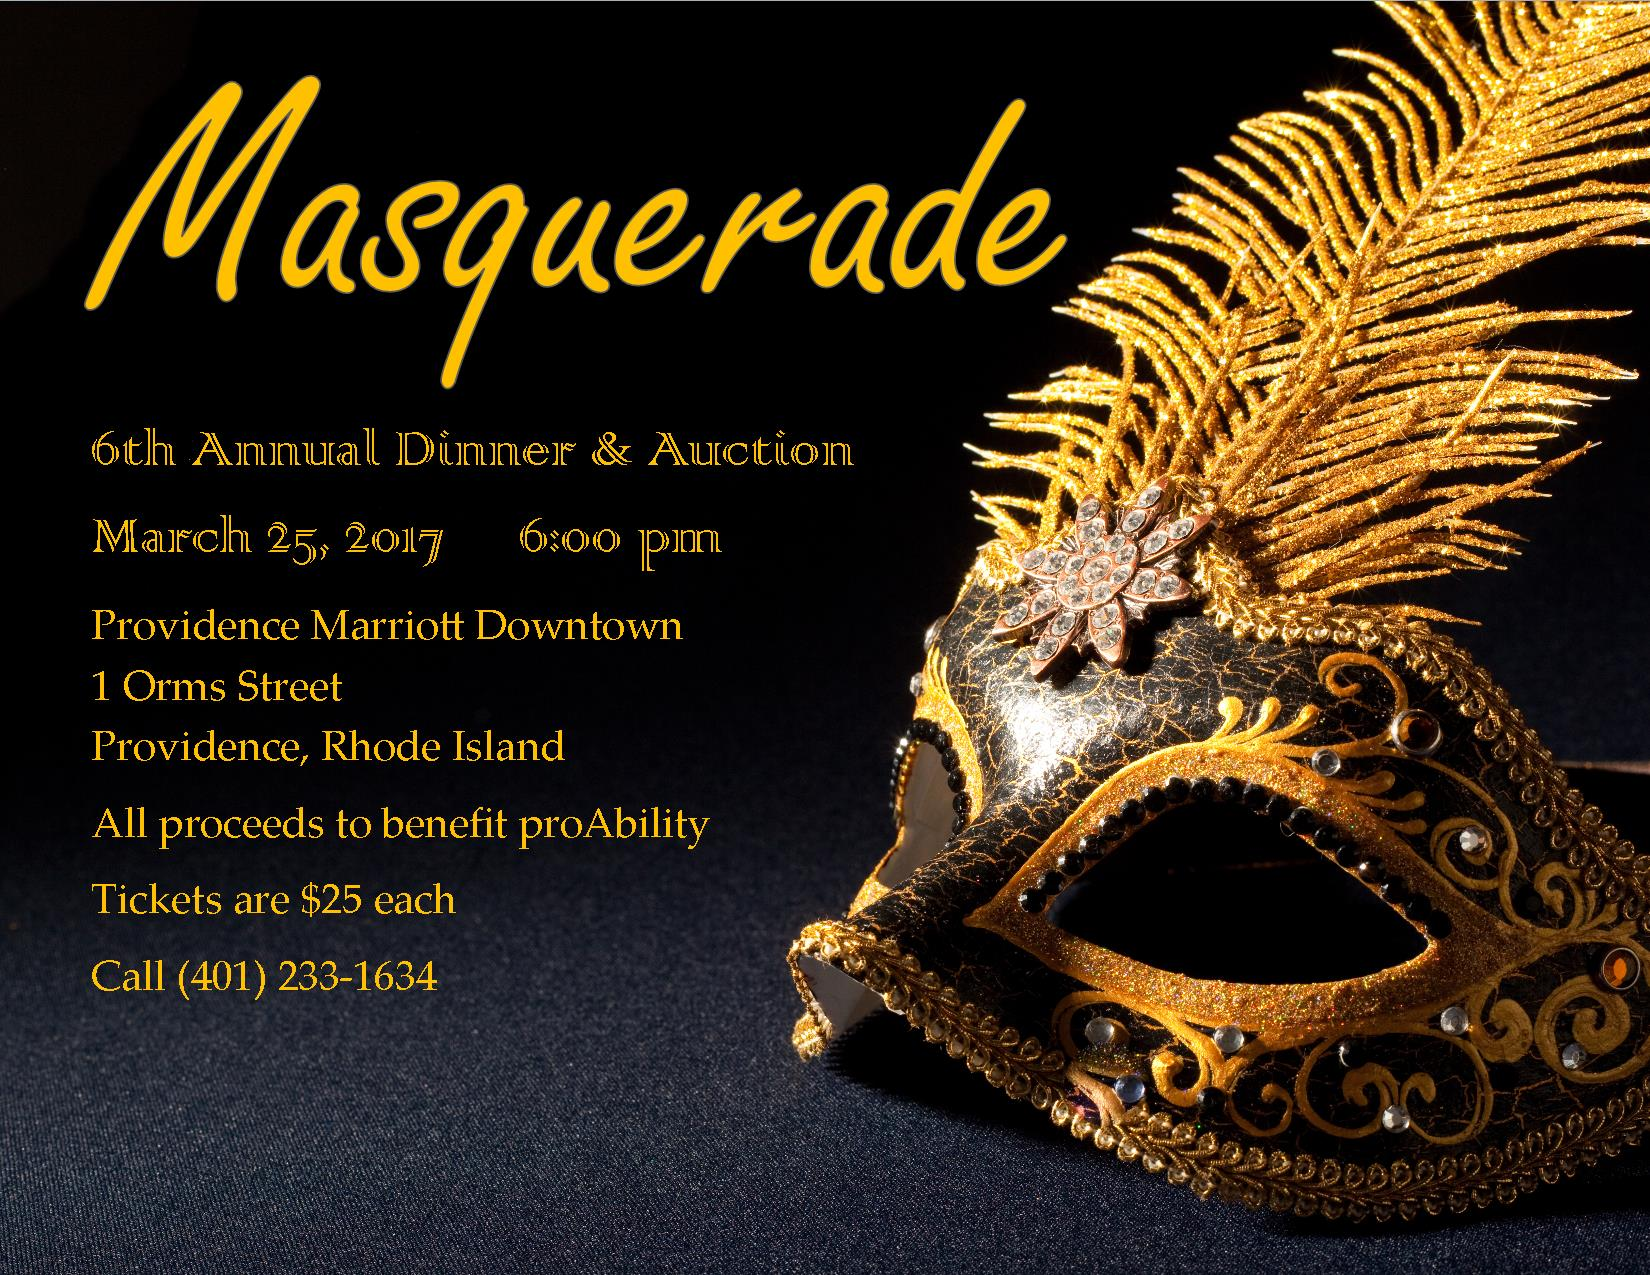 Masquerade Ball on March 25th